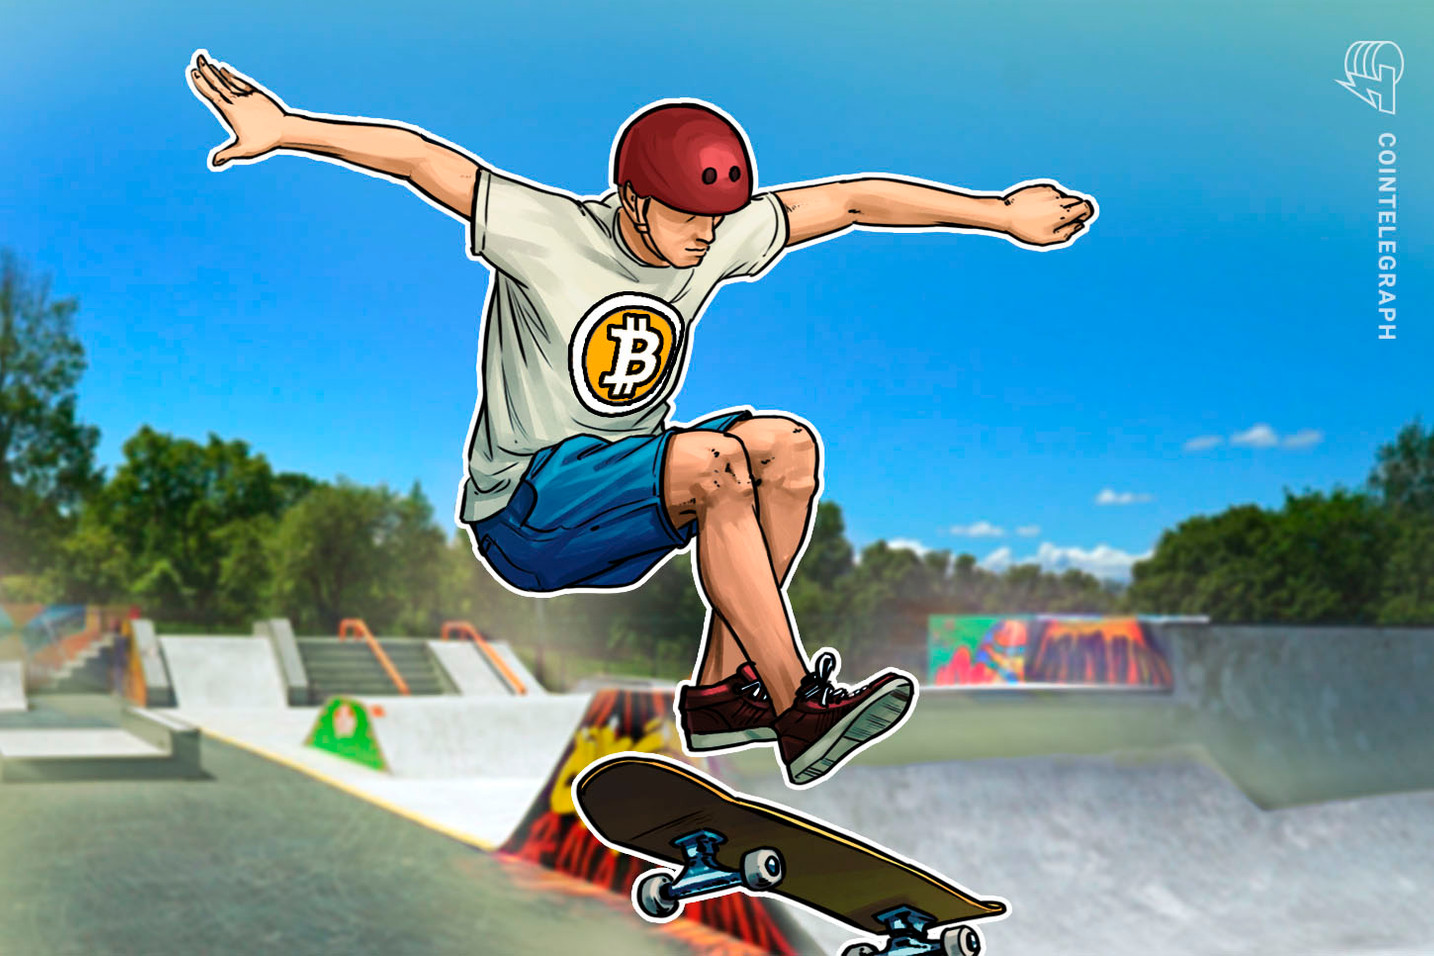 'Should I Bring My Ramp?' Tony Hawk to Speak at SF Bitcoin Conference